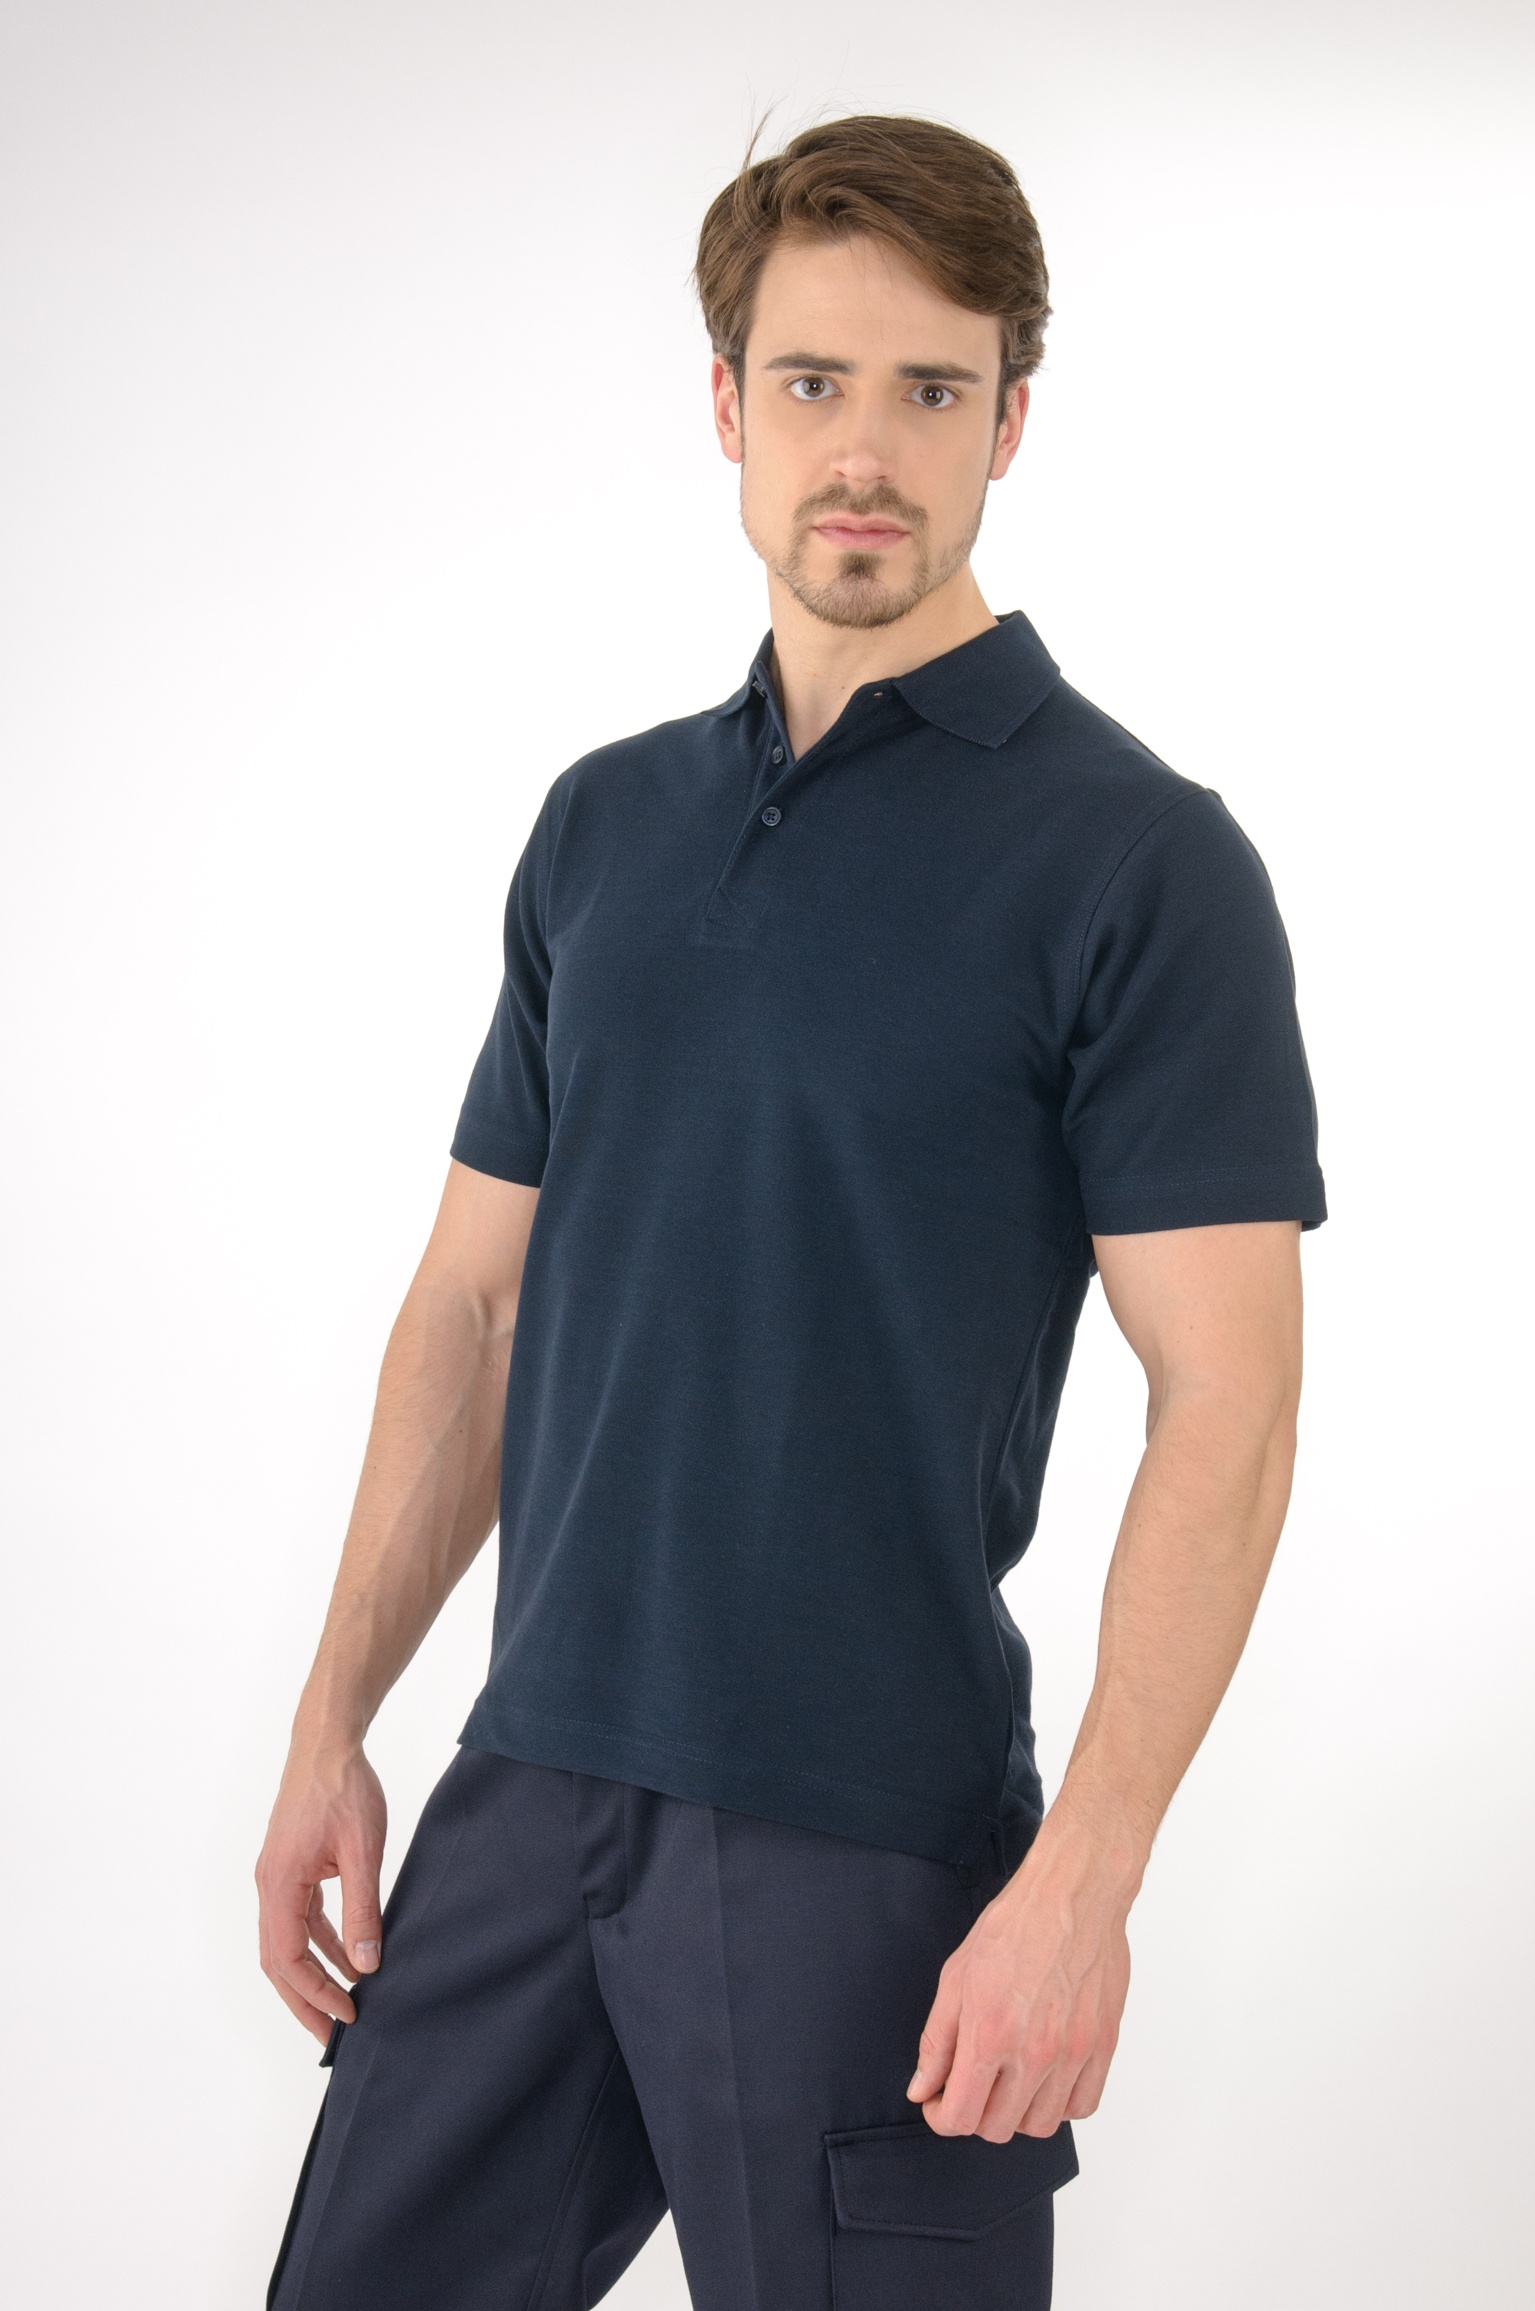 new arrival f1f78 9662e Polo Shirt Druck rot mit Ortsangabe